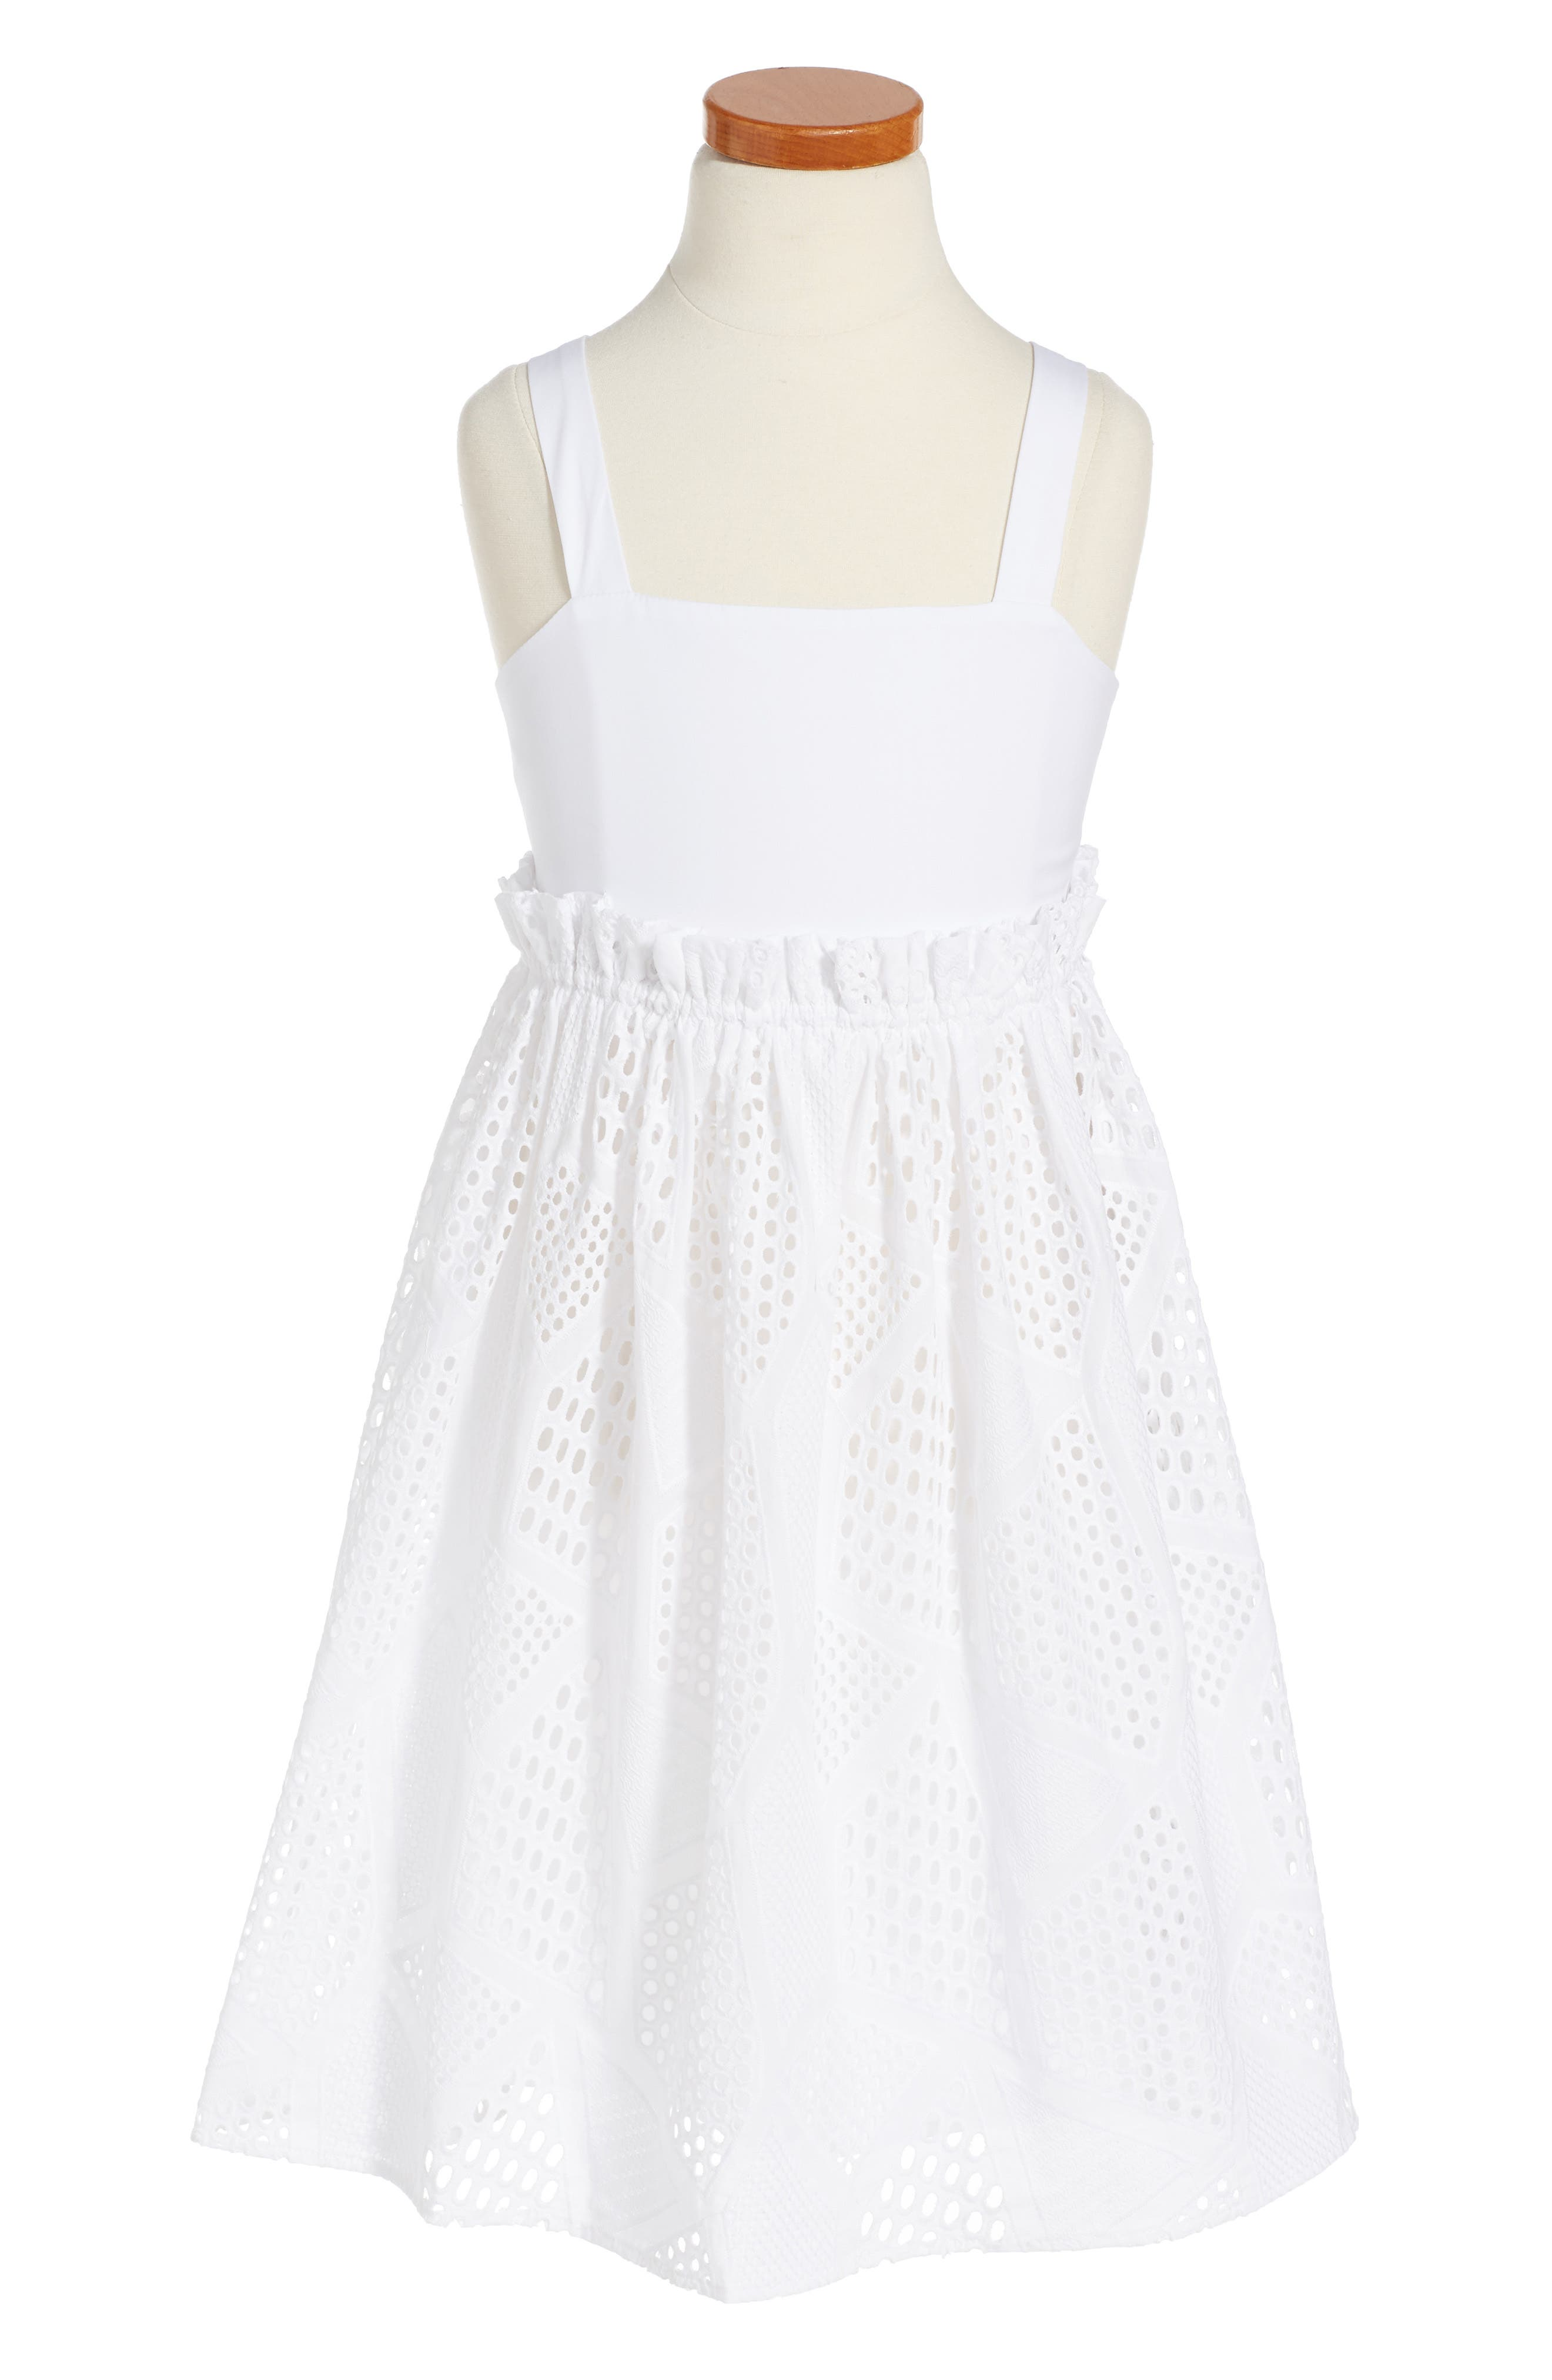 Milly Minis Eyelet Midi Sundress (Toddler Girls, Little Girls & Big Girls)